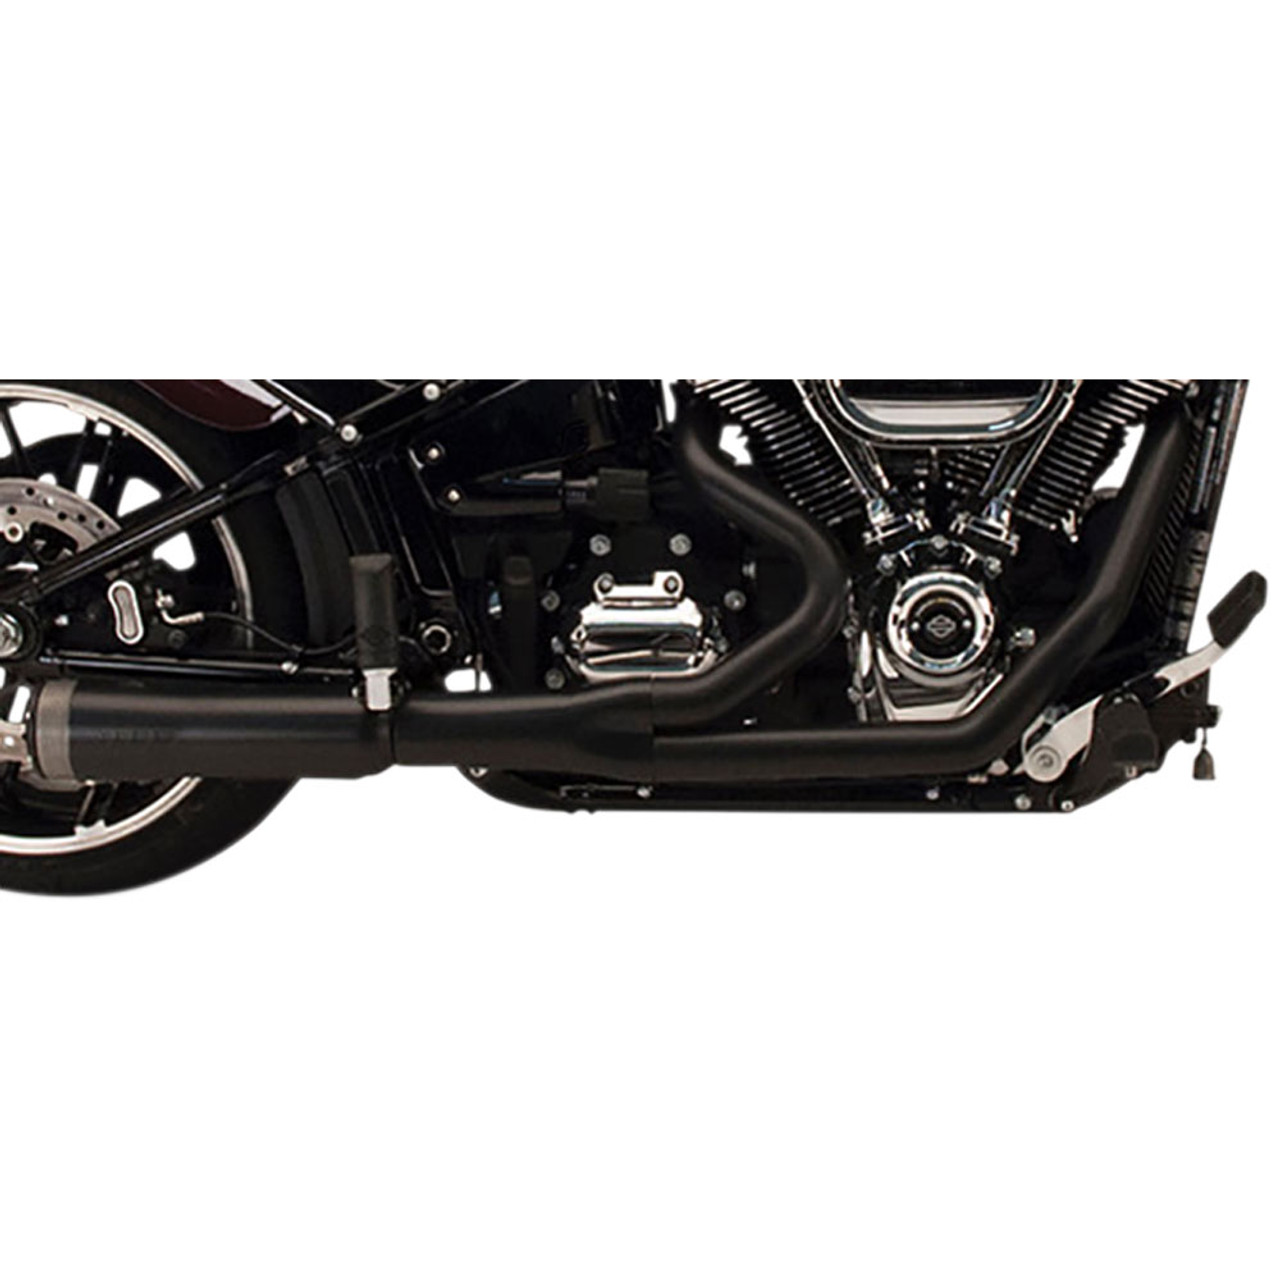 Supertrapp 2 Into 1 Fatshot Exhaust For 2006 2011 Harley Dyna Black 827 74690 Get Lowered Cycles